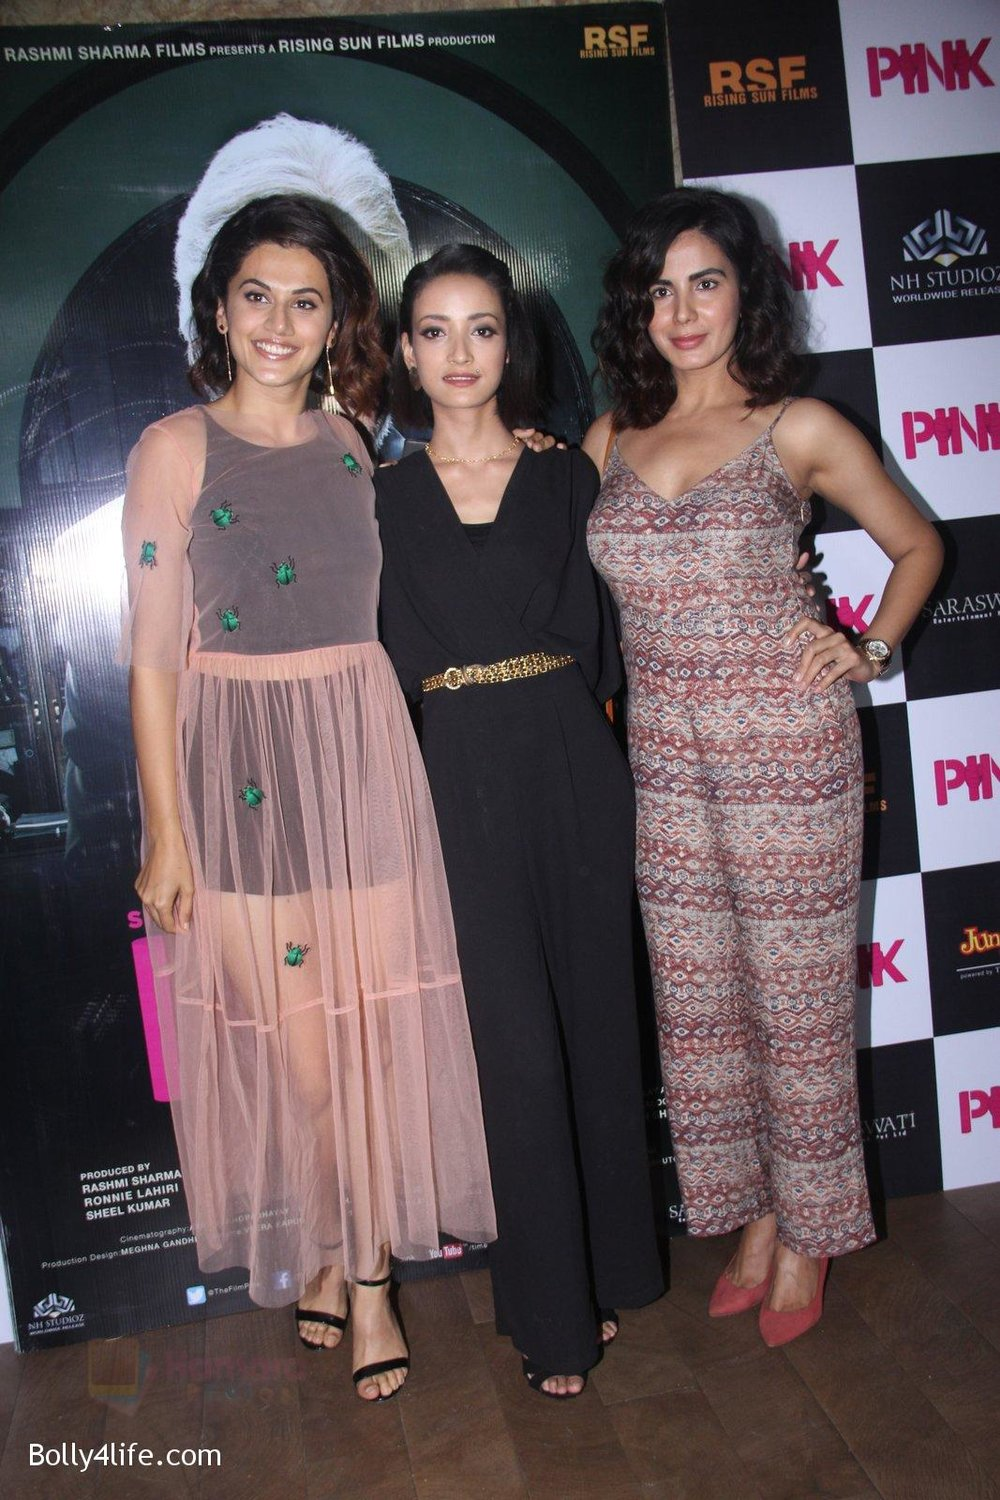 Kirti-Kulhari-Taapsee-Pannu-Andrea-Tariang-at-Pink-Screening-in-Lightbox-on-12th-Sept-2016-1-1.jpg